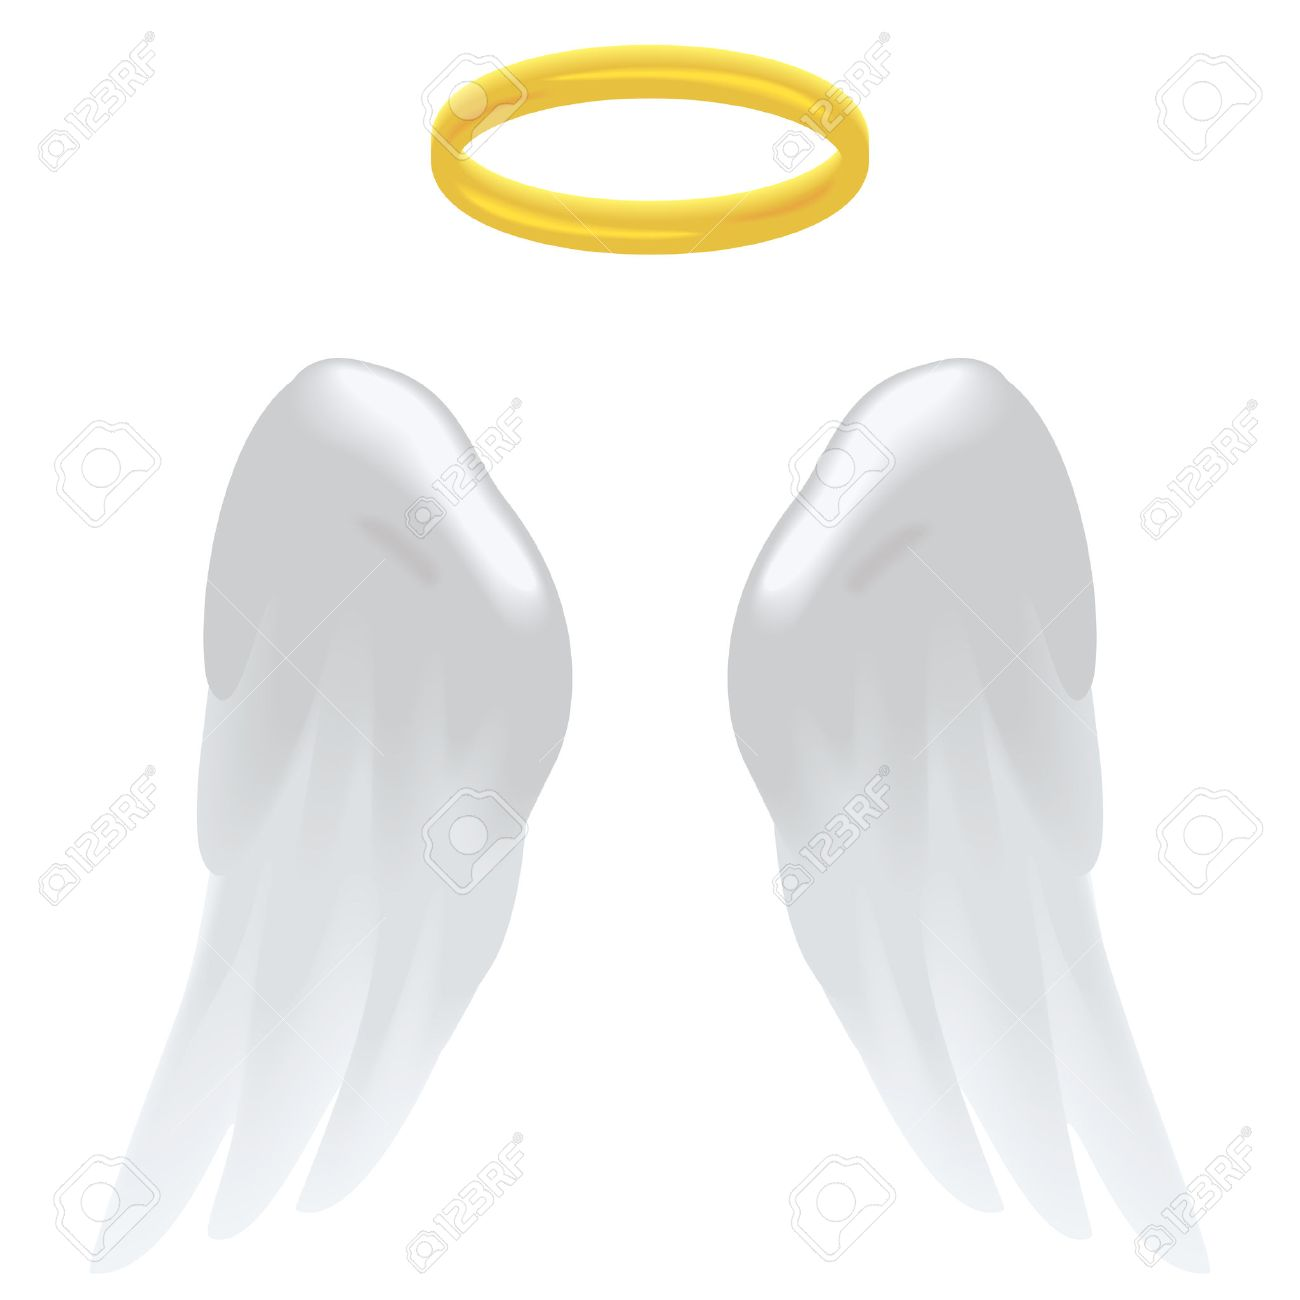 11896 Angel free clipart.